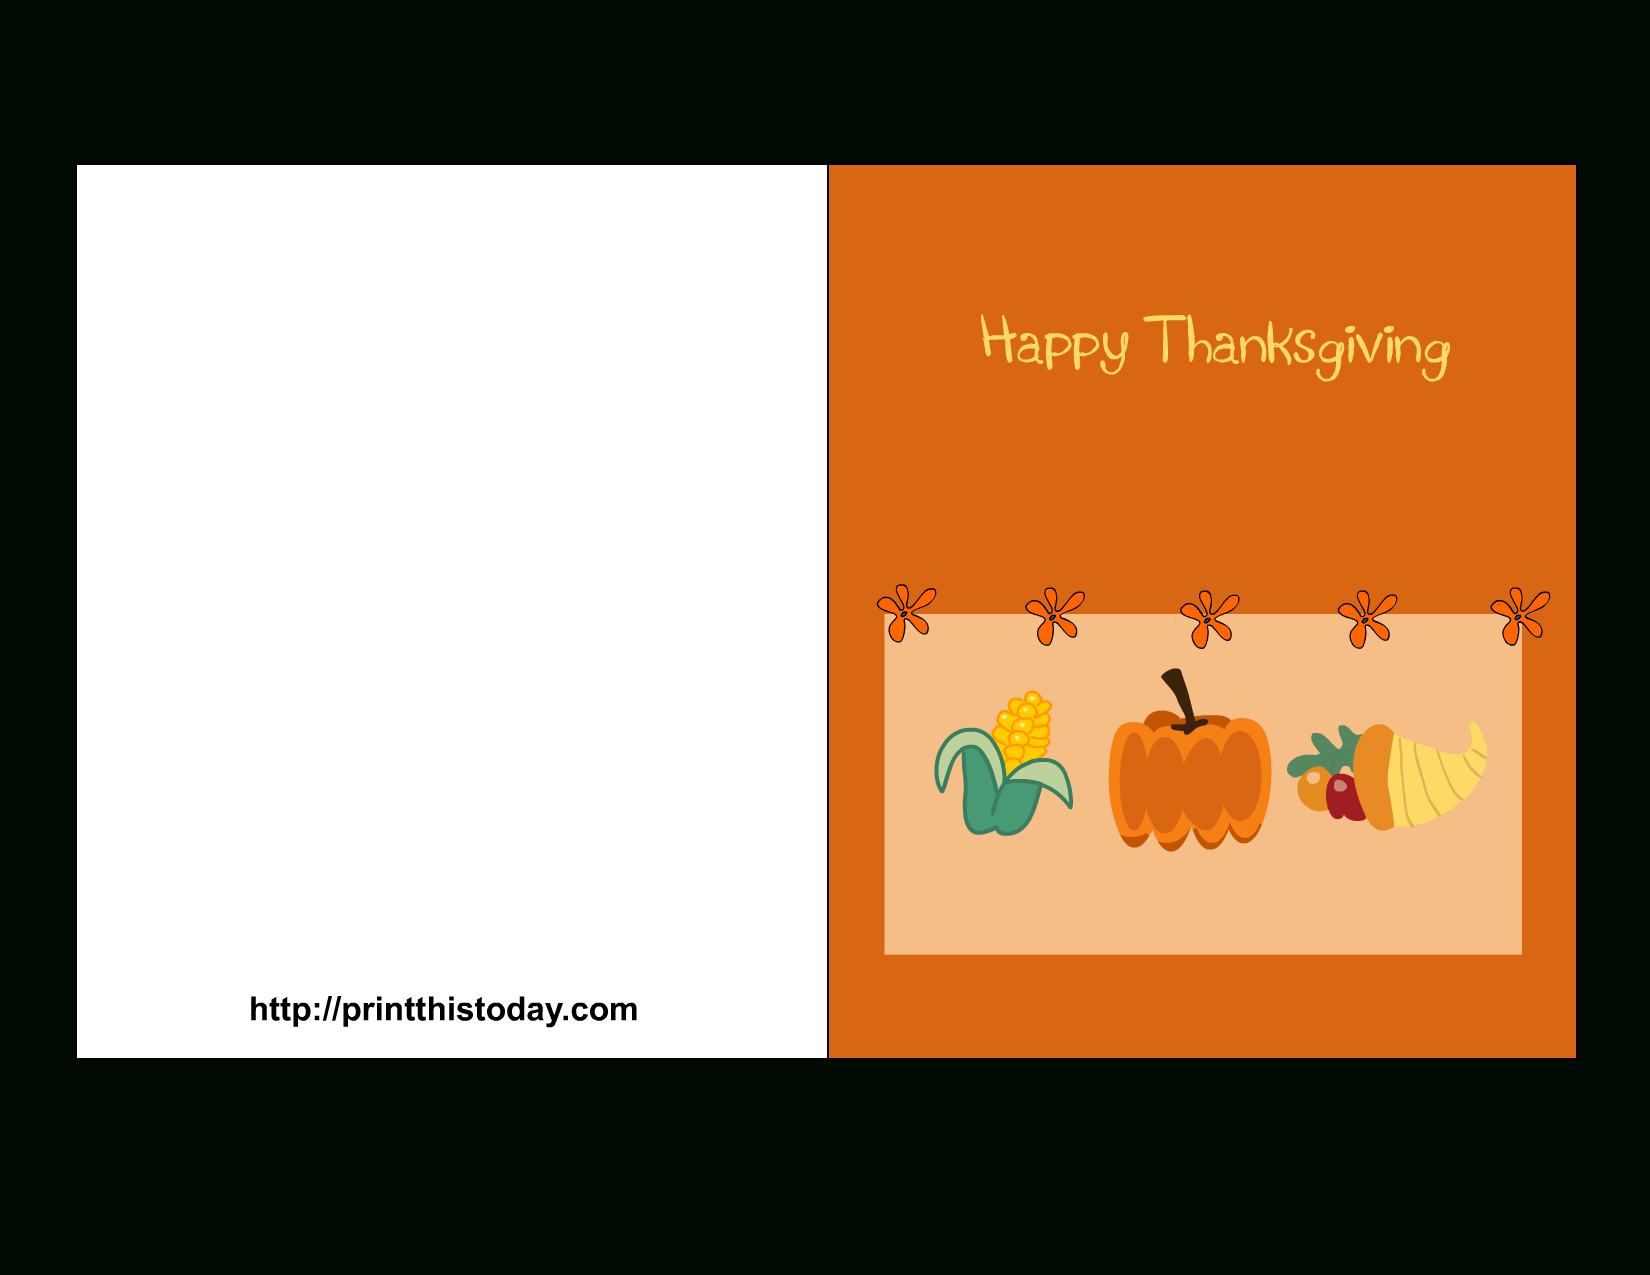 Free Printable Thanksgiving Cards - Happy Thanksgiving Cards Free Printable